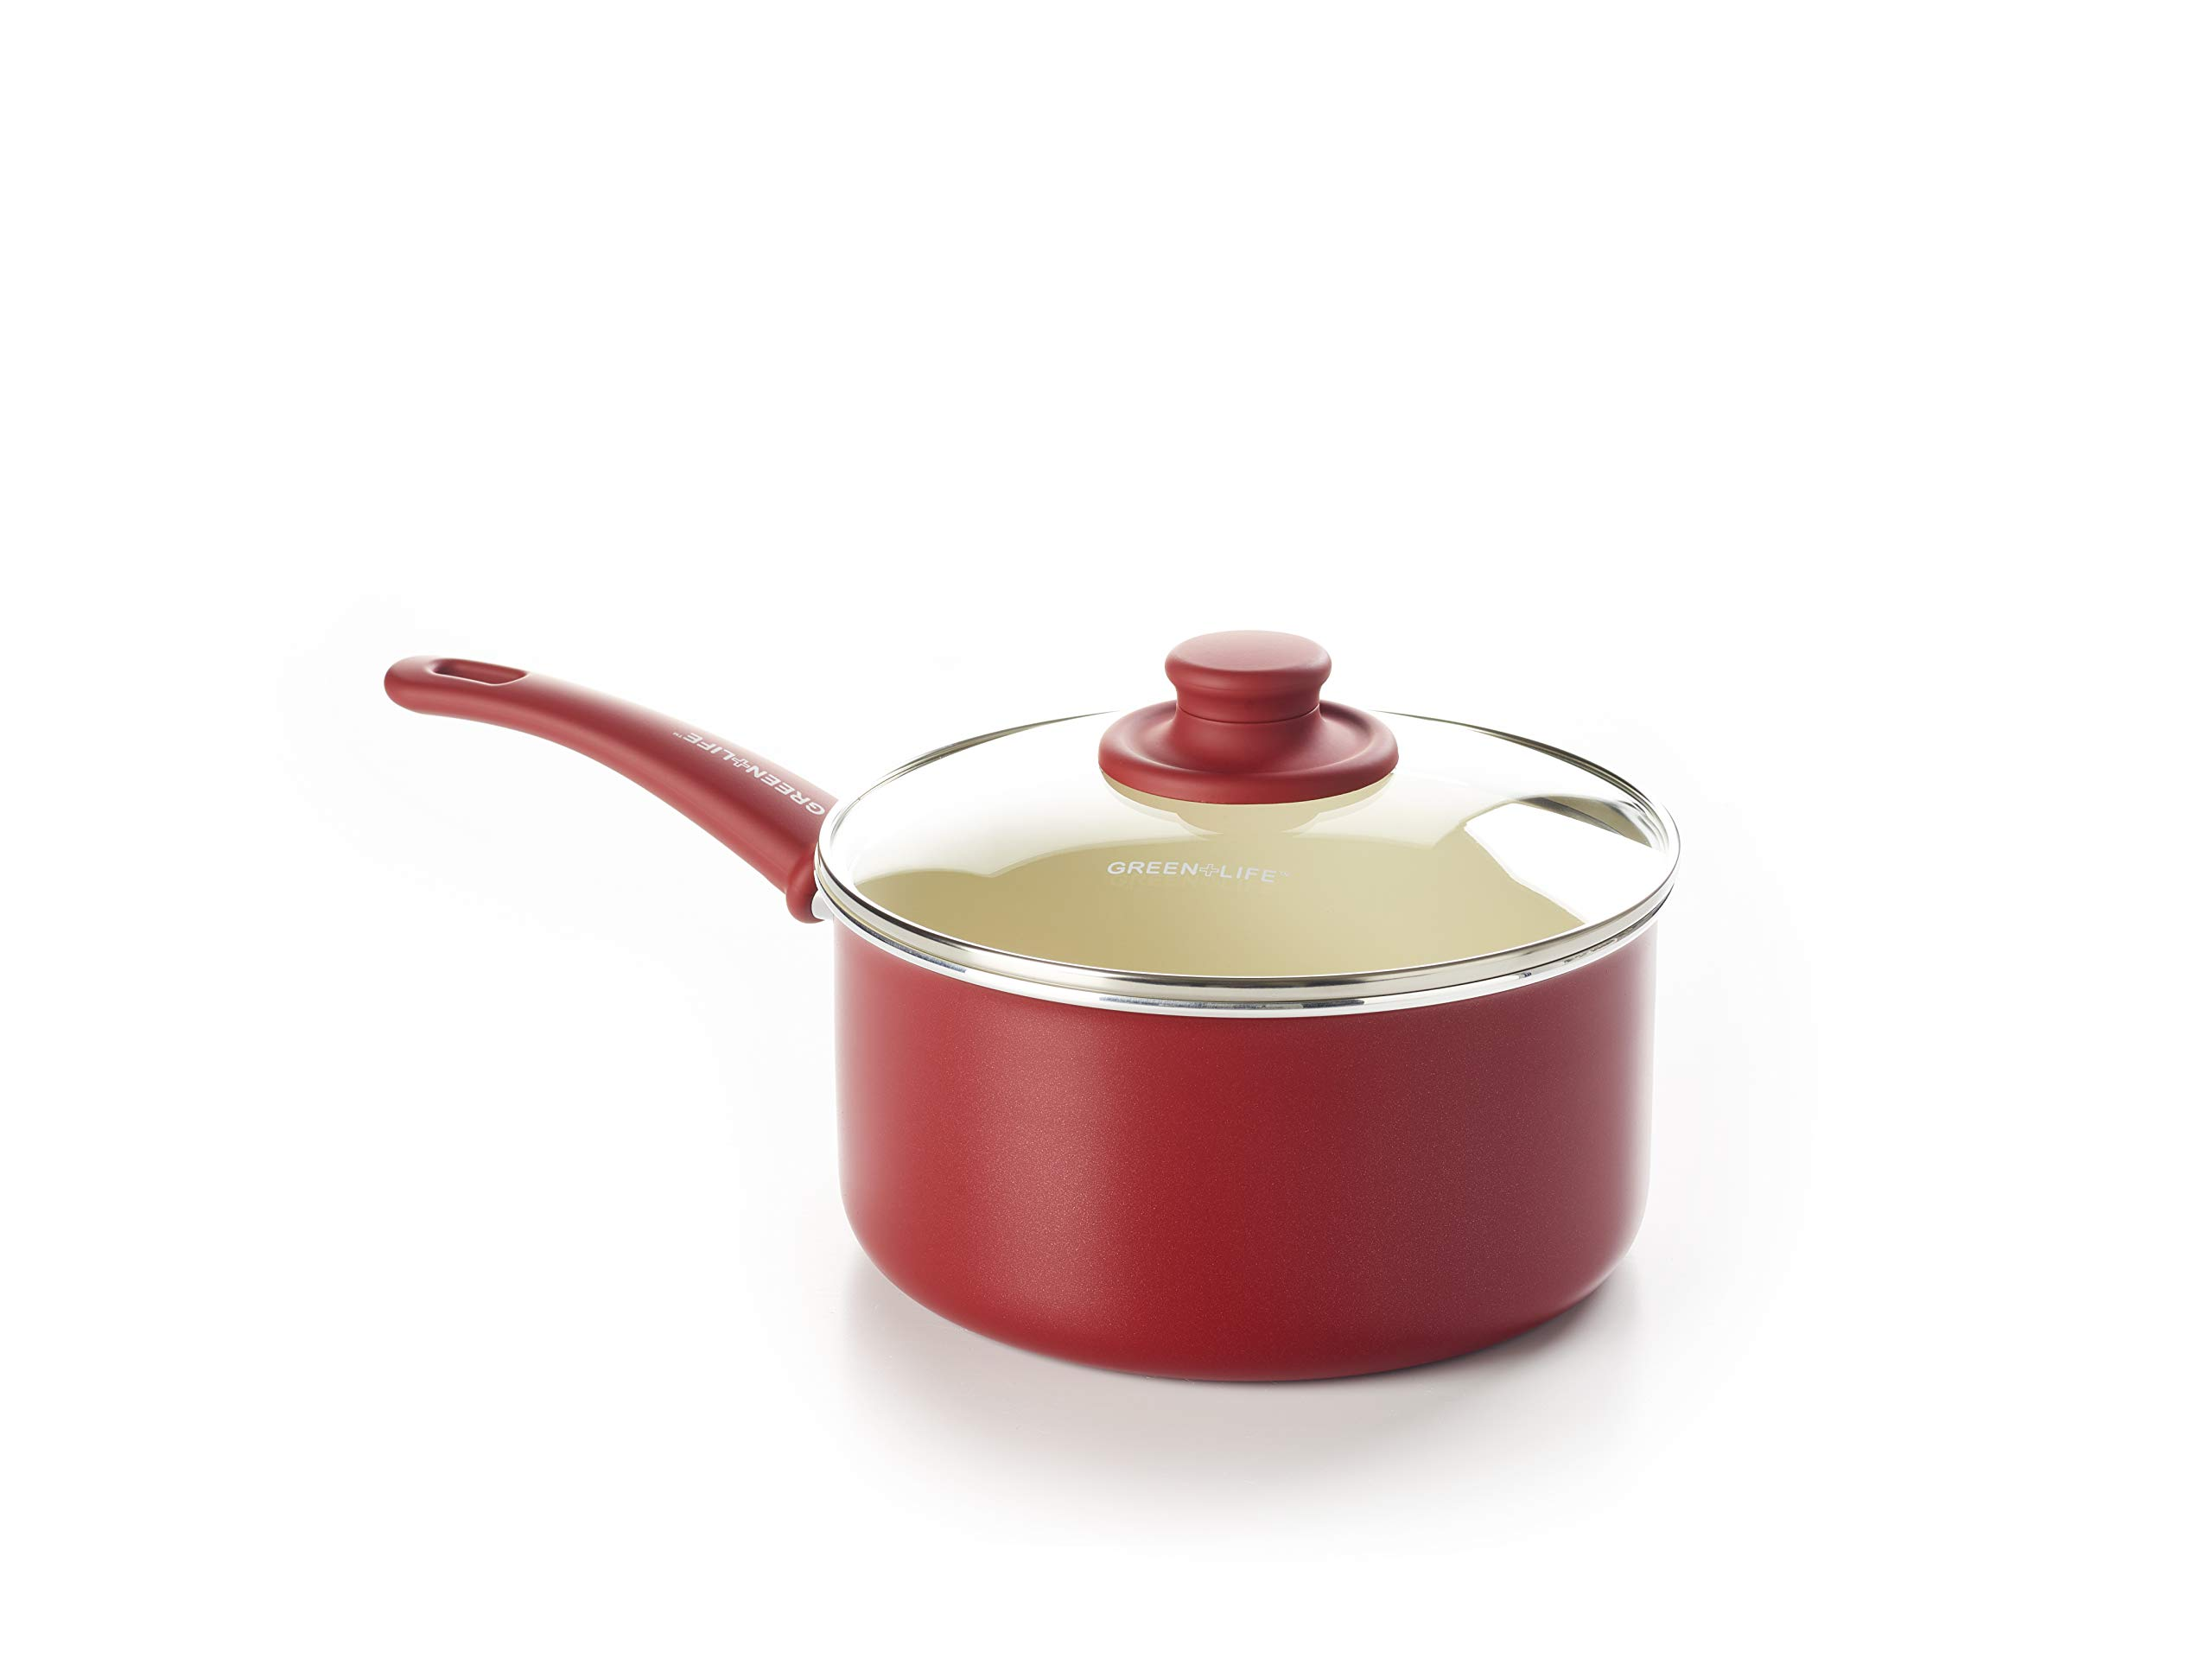 GreenLife CC001698-001 Soft Grip 3QT Ceramic Non-Stick, Red by GreenLife (Image #1)